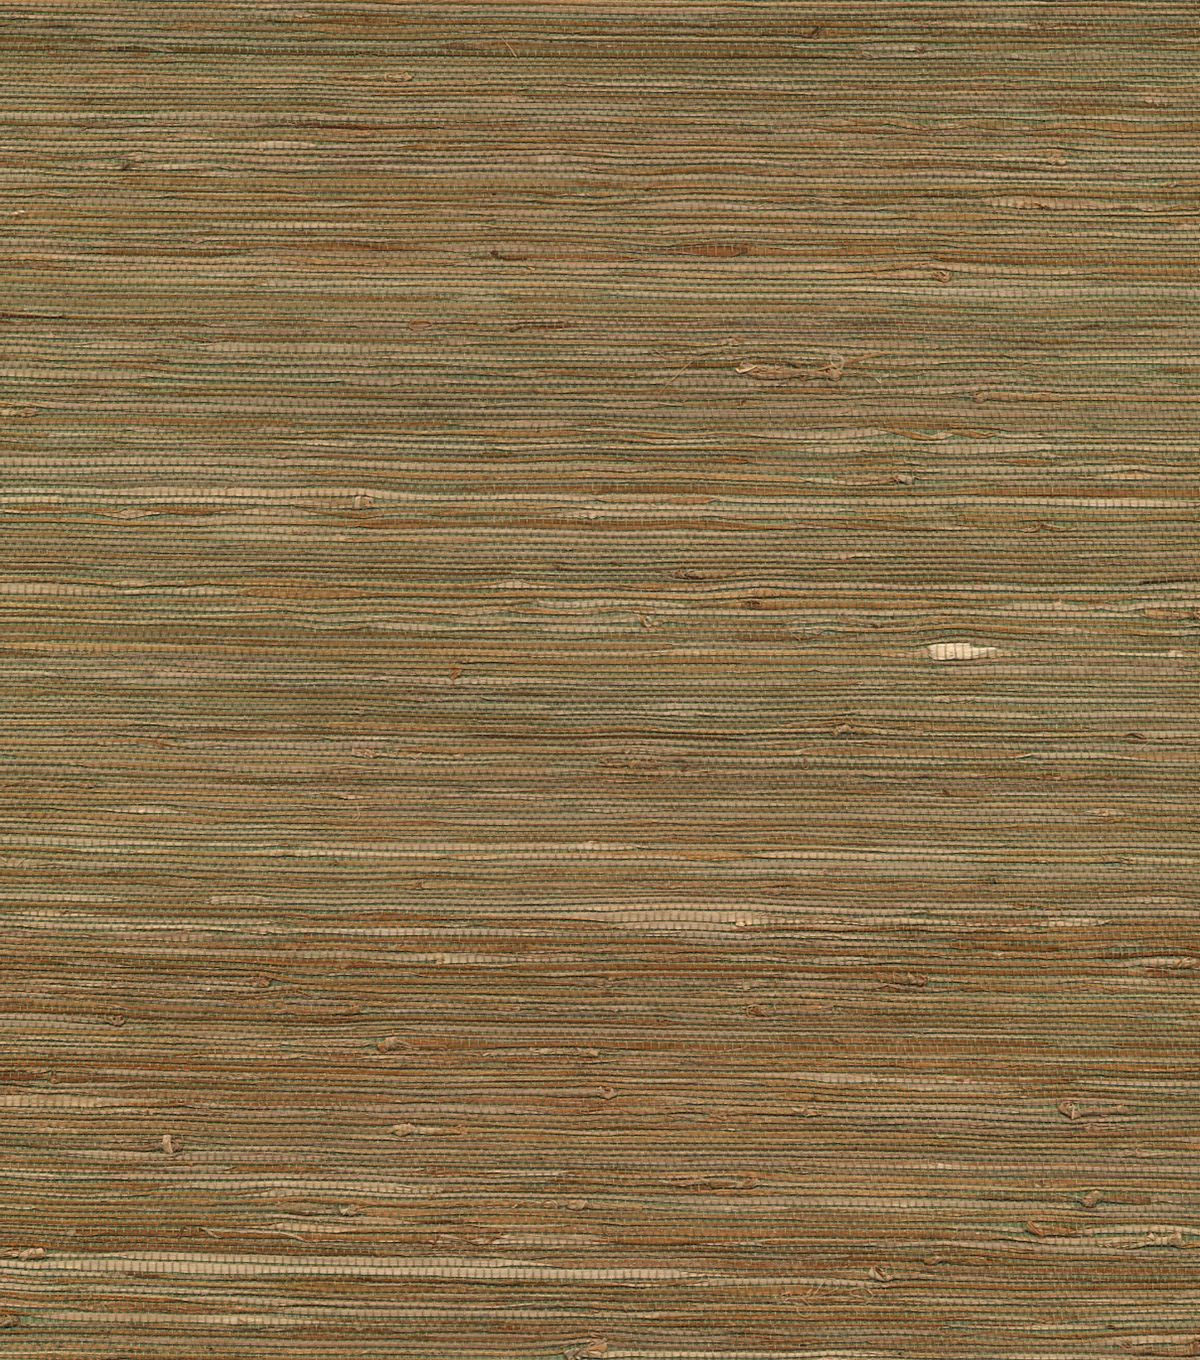 Sample Grasscloth Wallpaper in Natural from the Surface